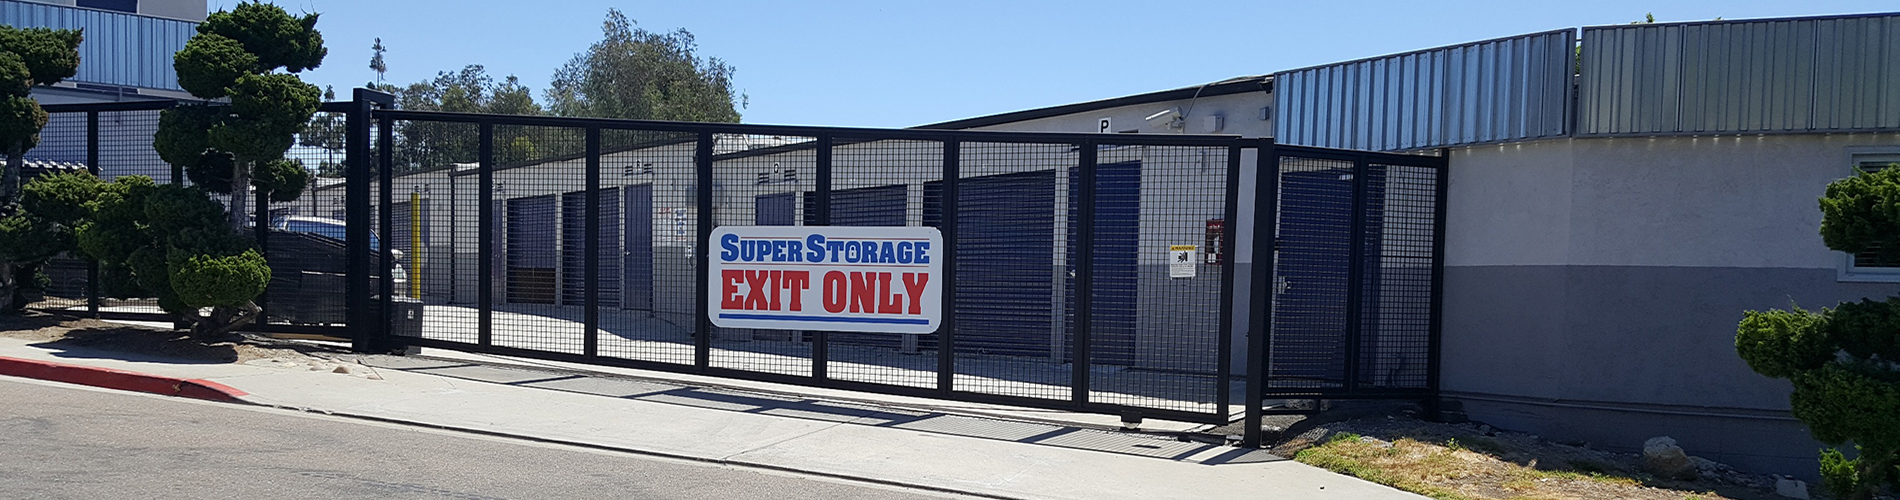 SuperStorage San Diego Sign